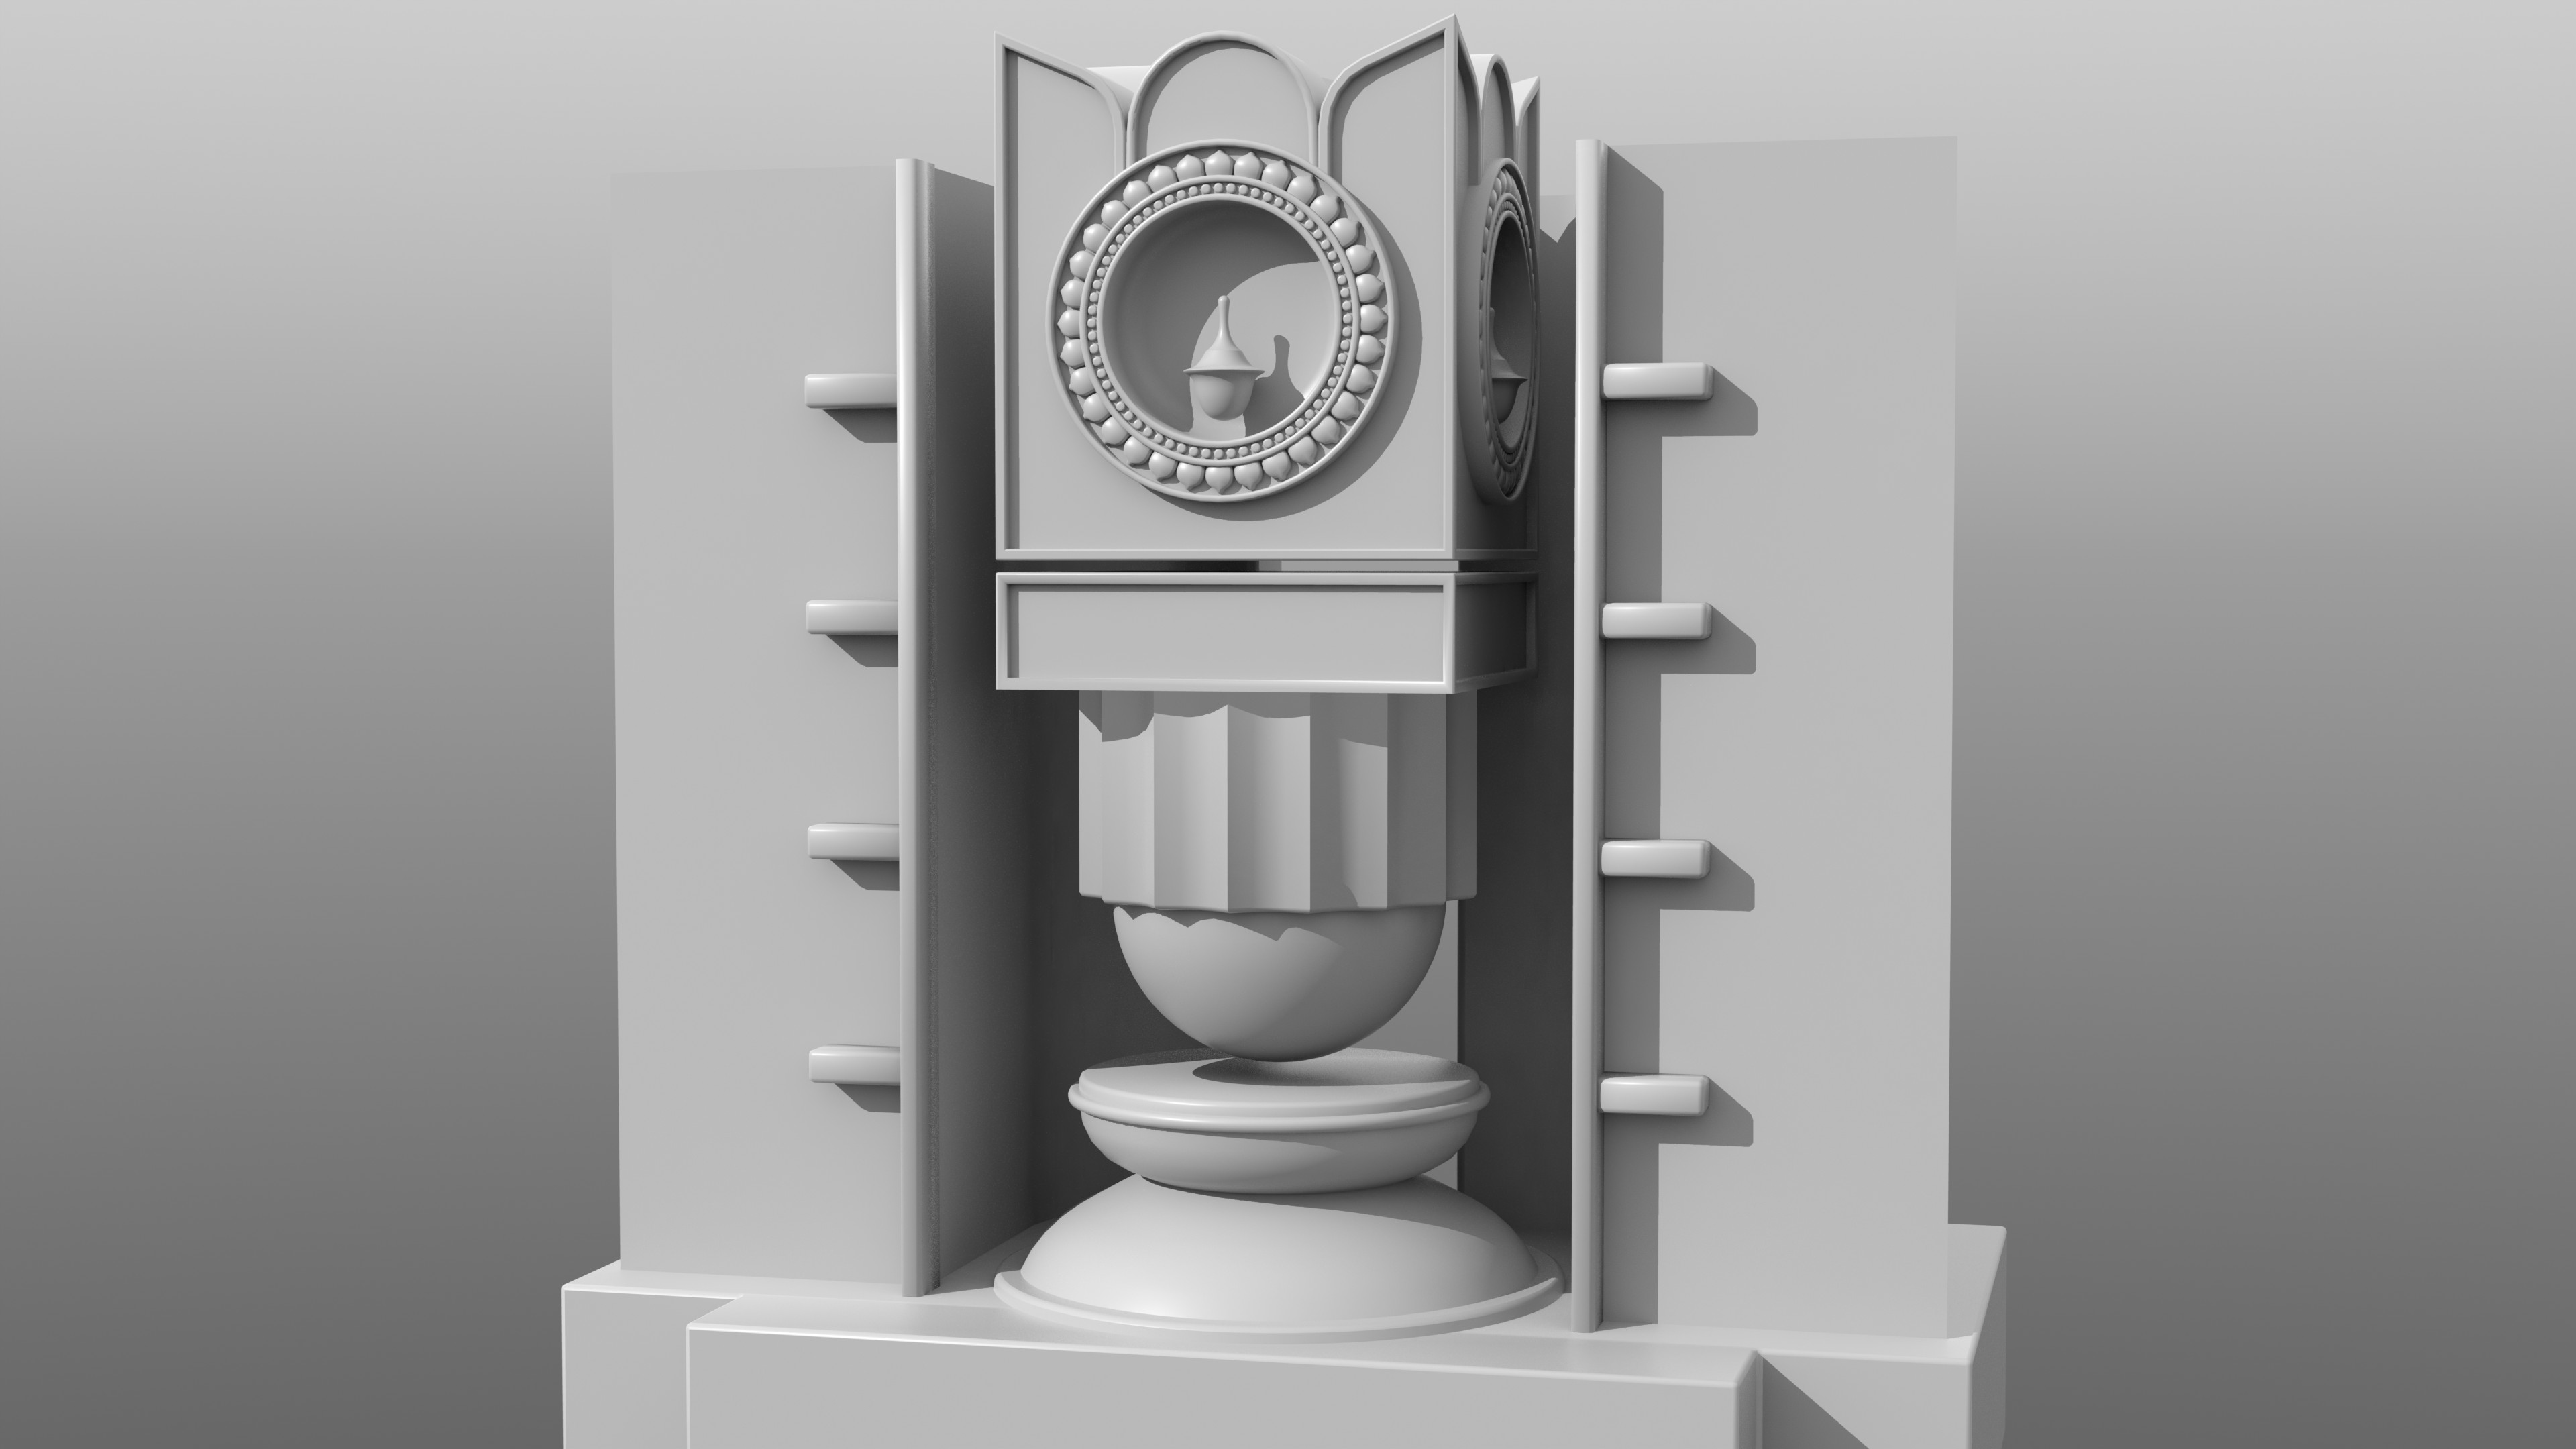 I was getting tired of seeing the same old poorly designed and rendered diya images around Diwali, so started putting together a couple of scenes:  one for a plate of sweet offerings, and one for a futuristic shrine.